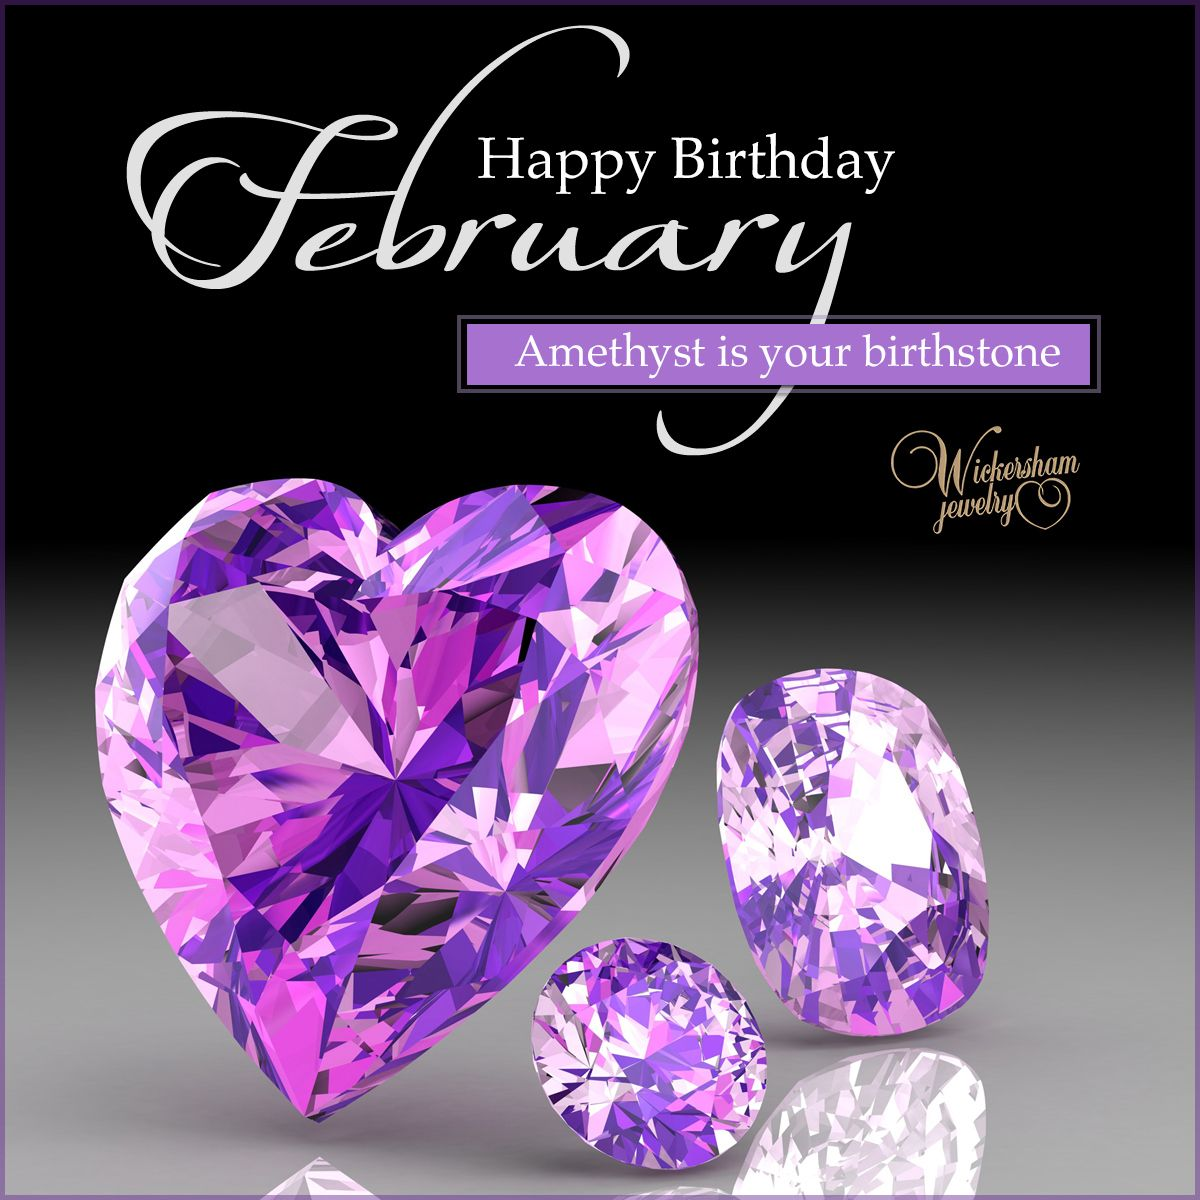 The Amethyst is the birthstone for those born in February